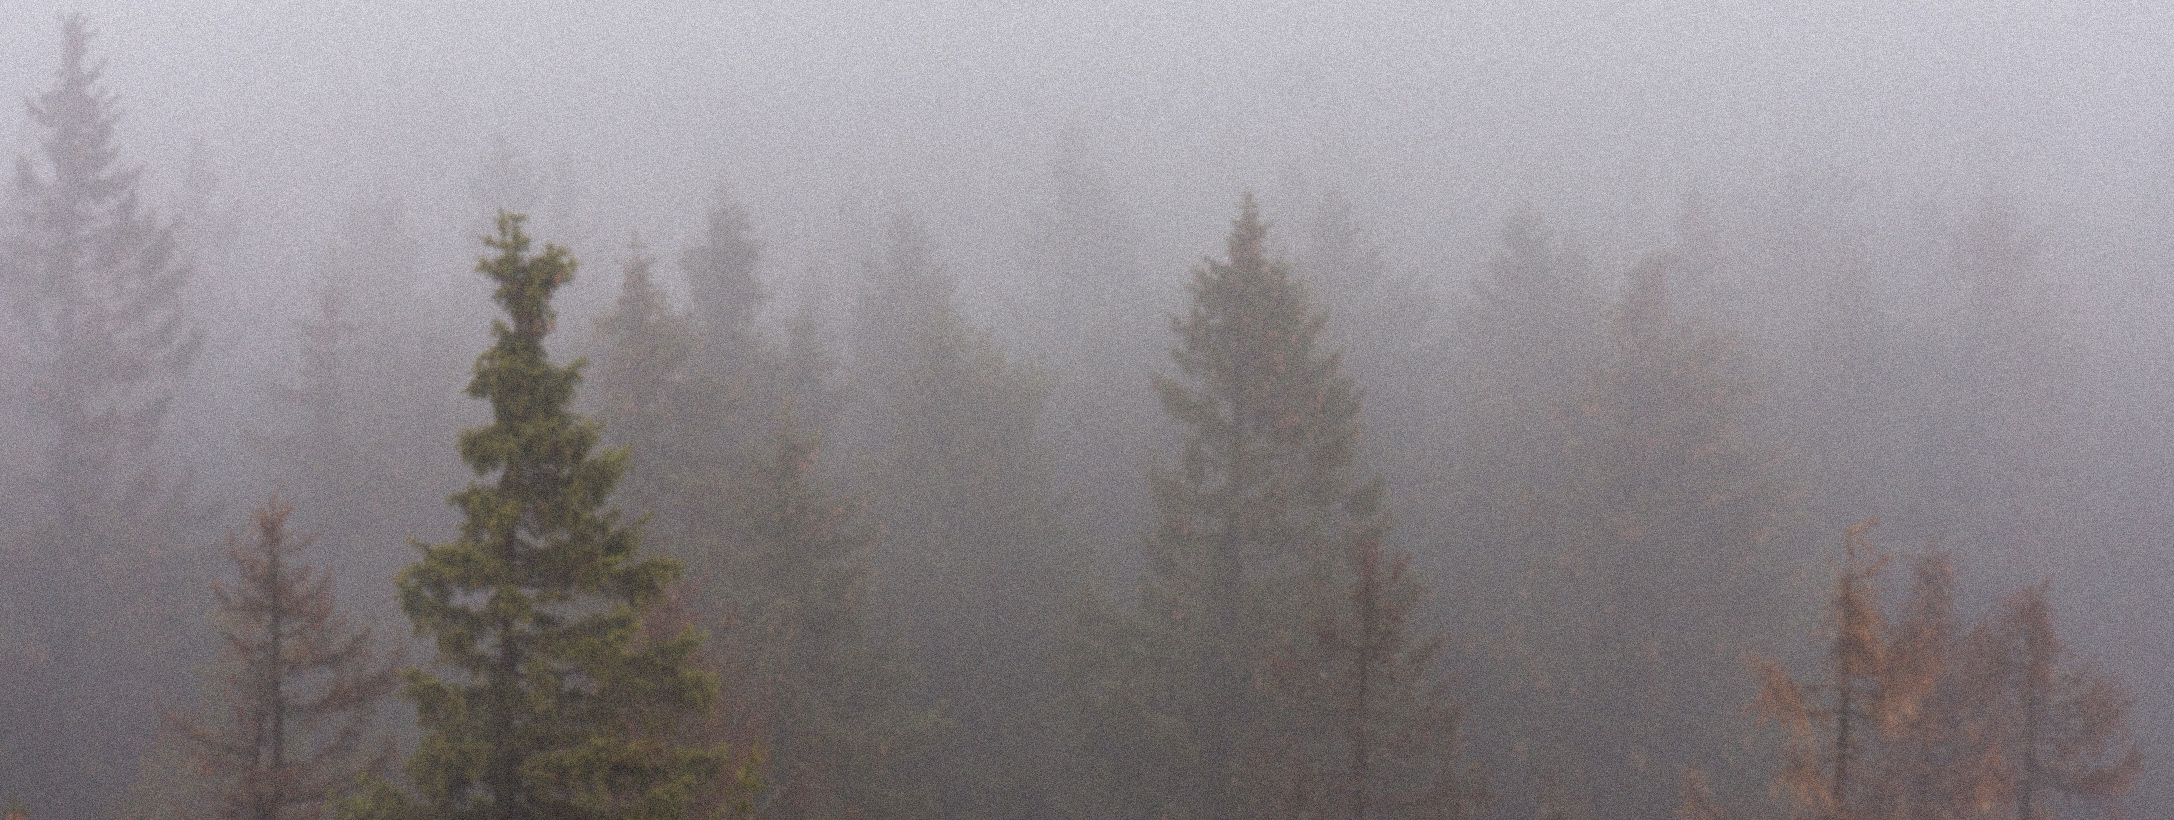 Photograph of trees surrounded by fog